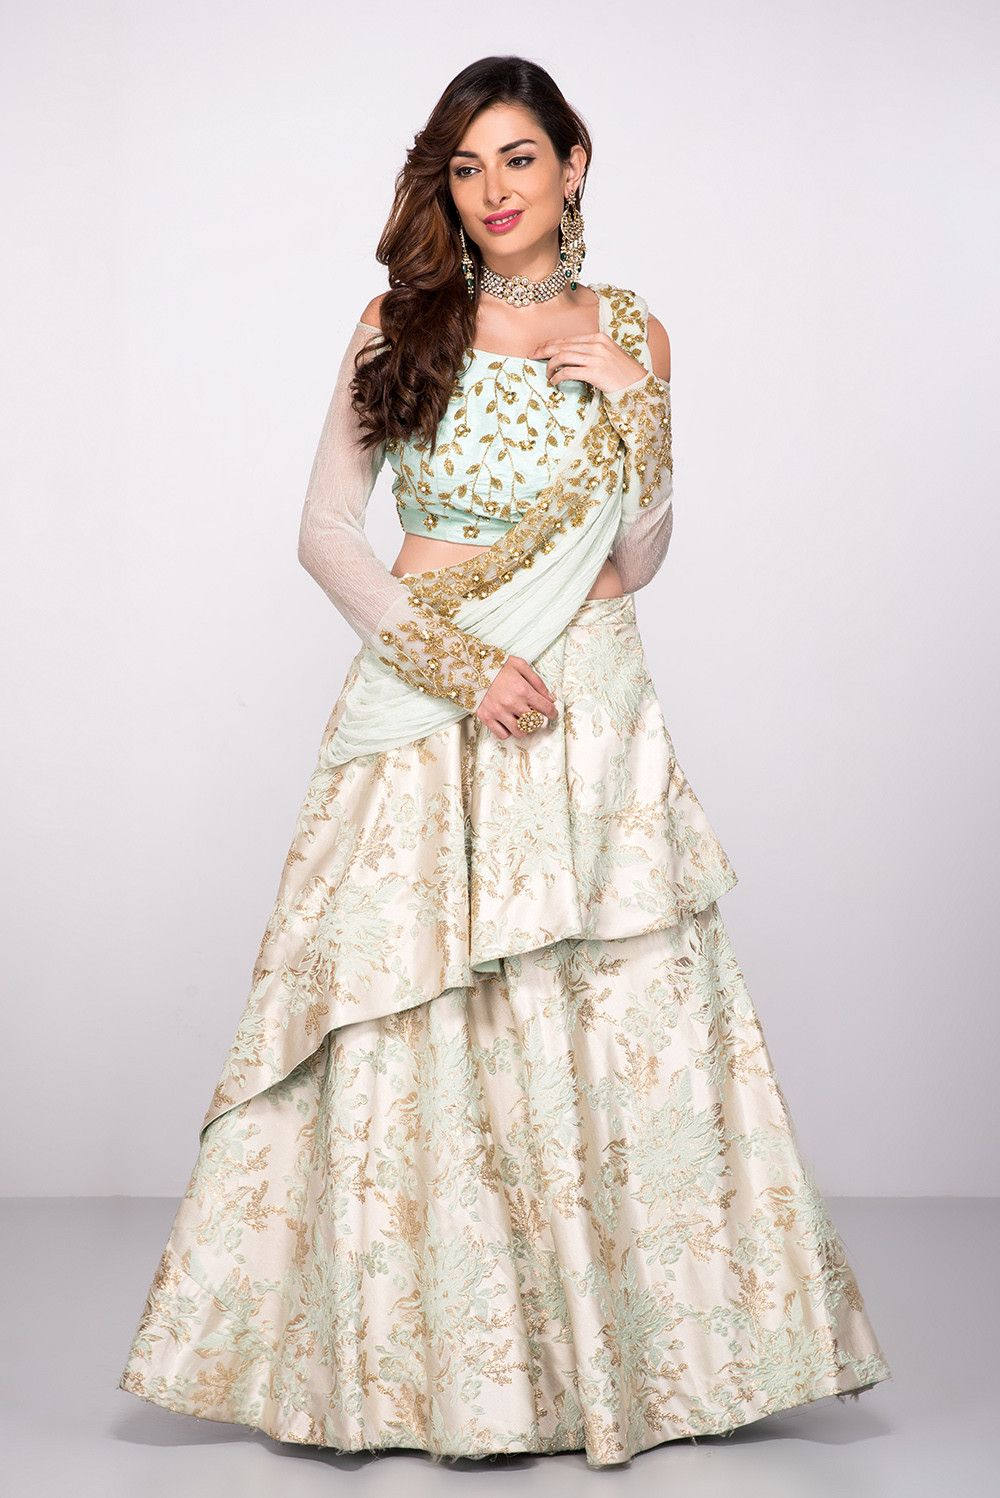 India's largest fashion rental service Sangeet outfit